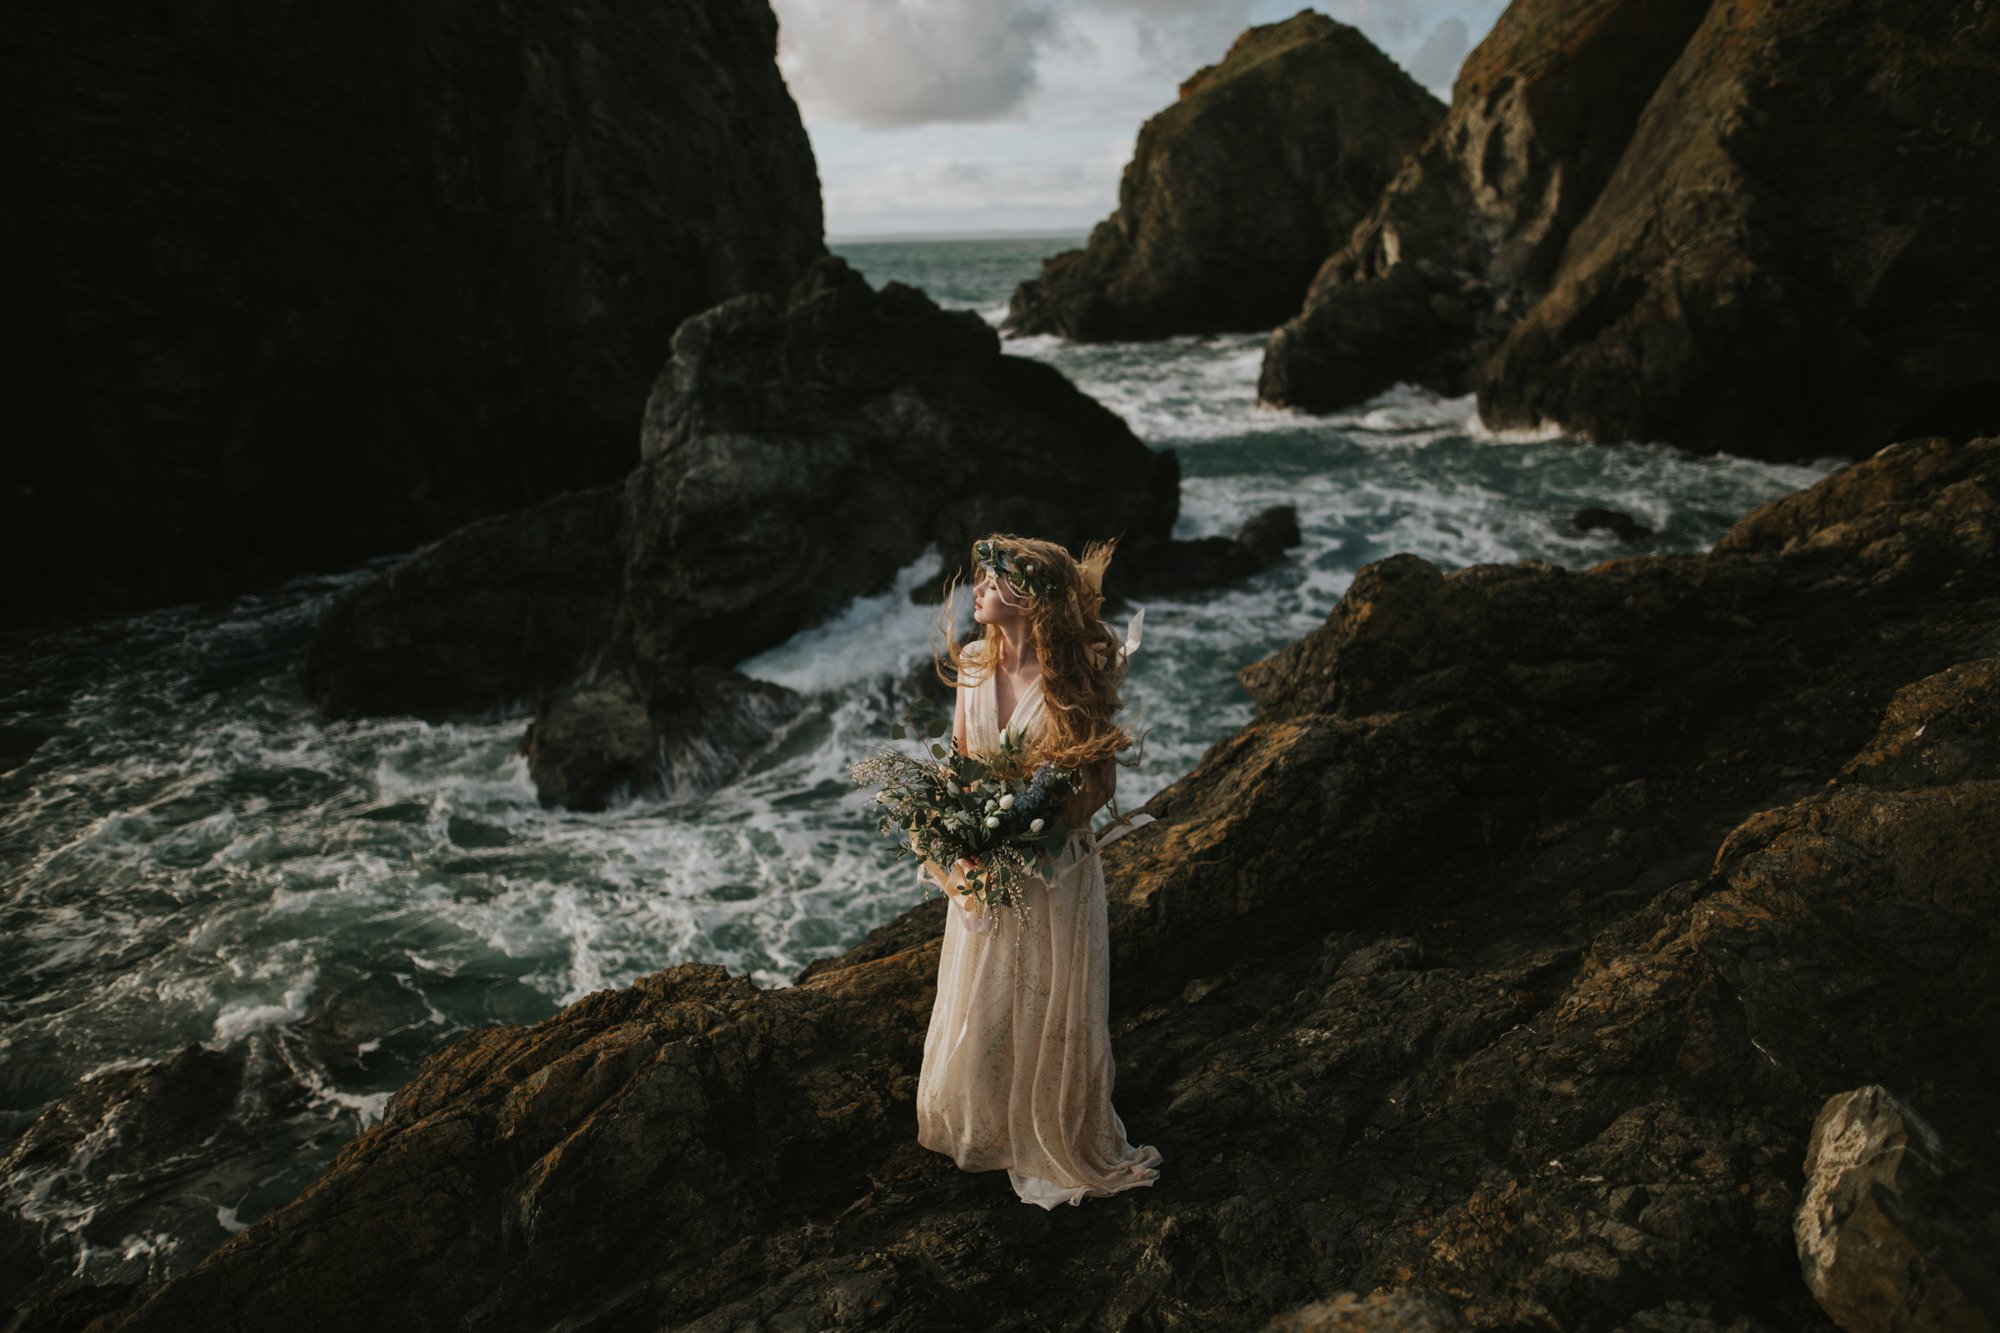 Elopement Photographer Uk shoot a beautiful bride on her wedding day on a rough cliff in Cornwall